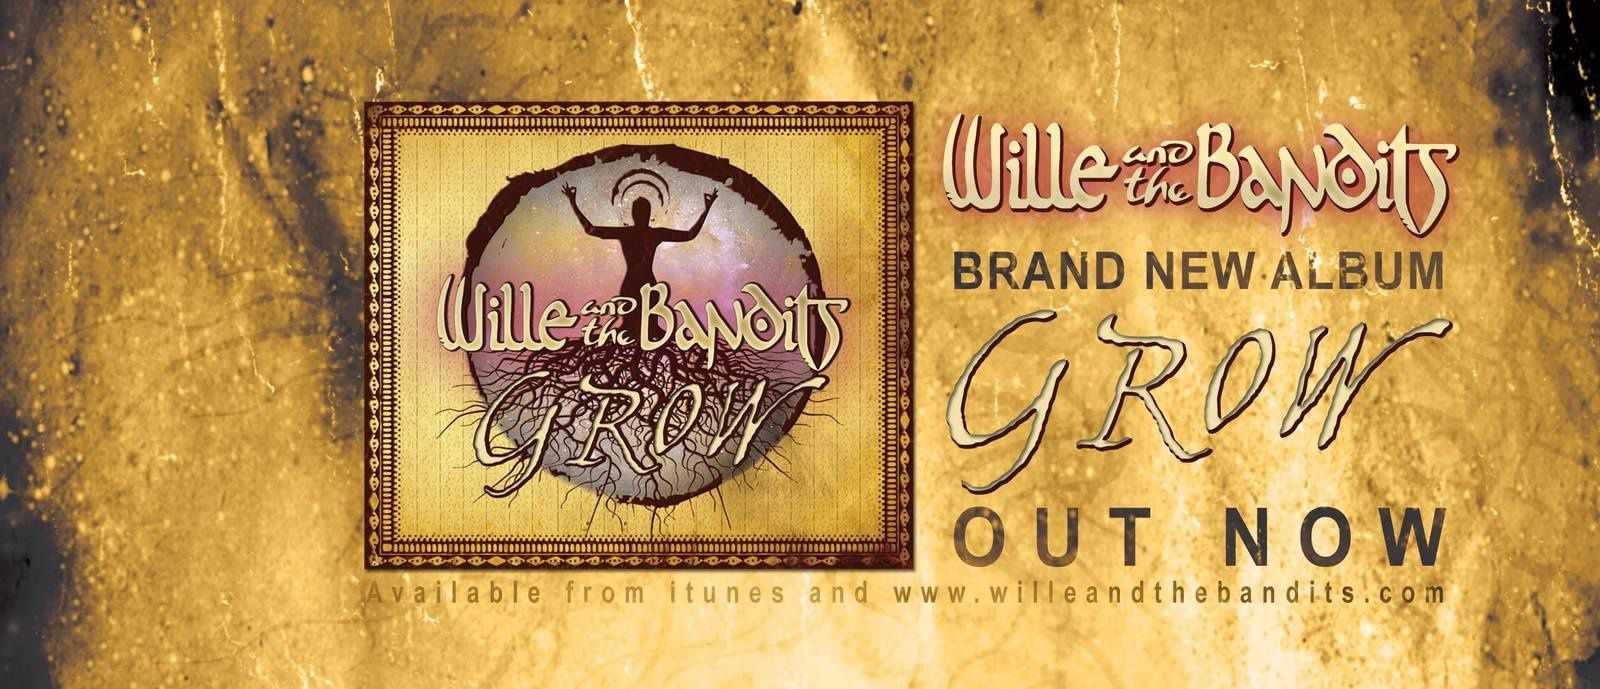 Wille & the Bandits (UK) + Les Freatles @ Rock Classic - 23/01/2014 - 20h15 - Entrée gratuite !